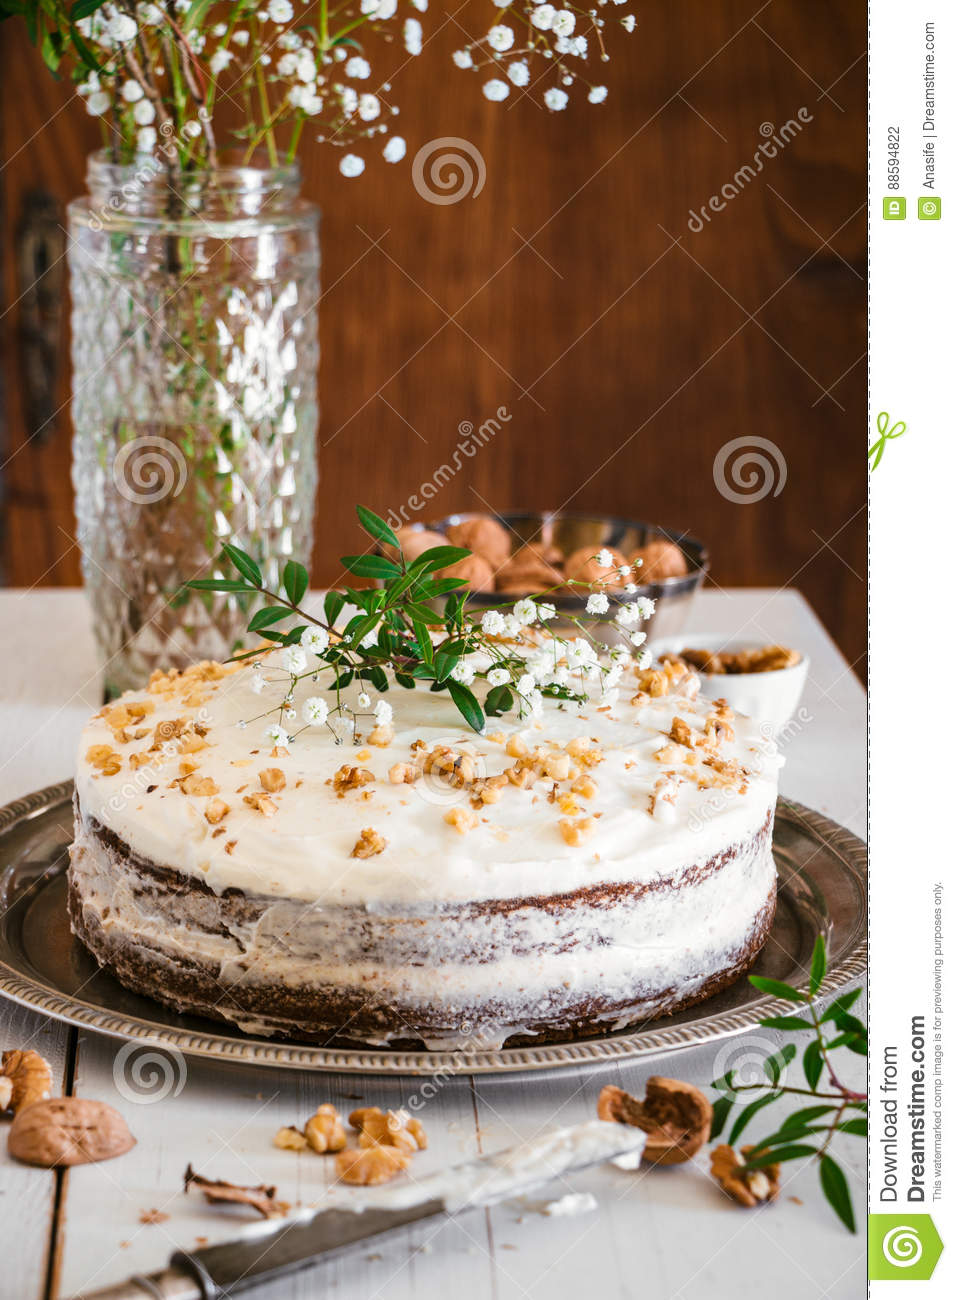 Carrot Cake Decorated With Flowers Stock Photo Image Of